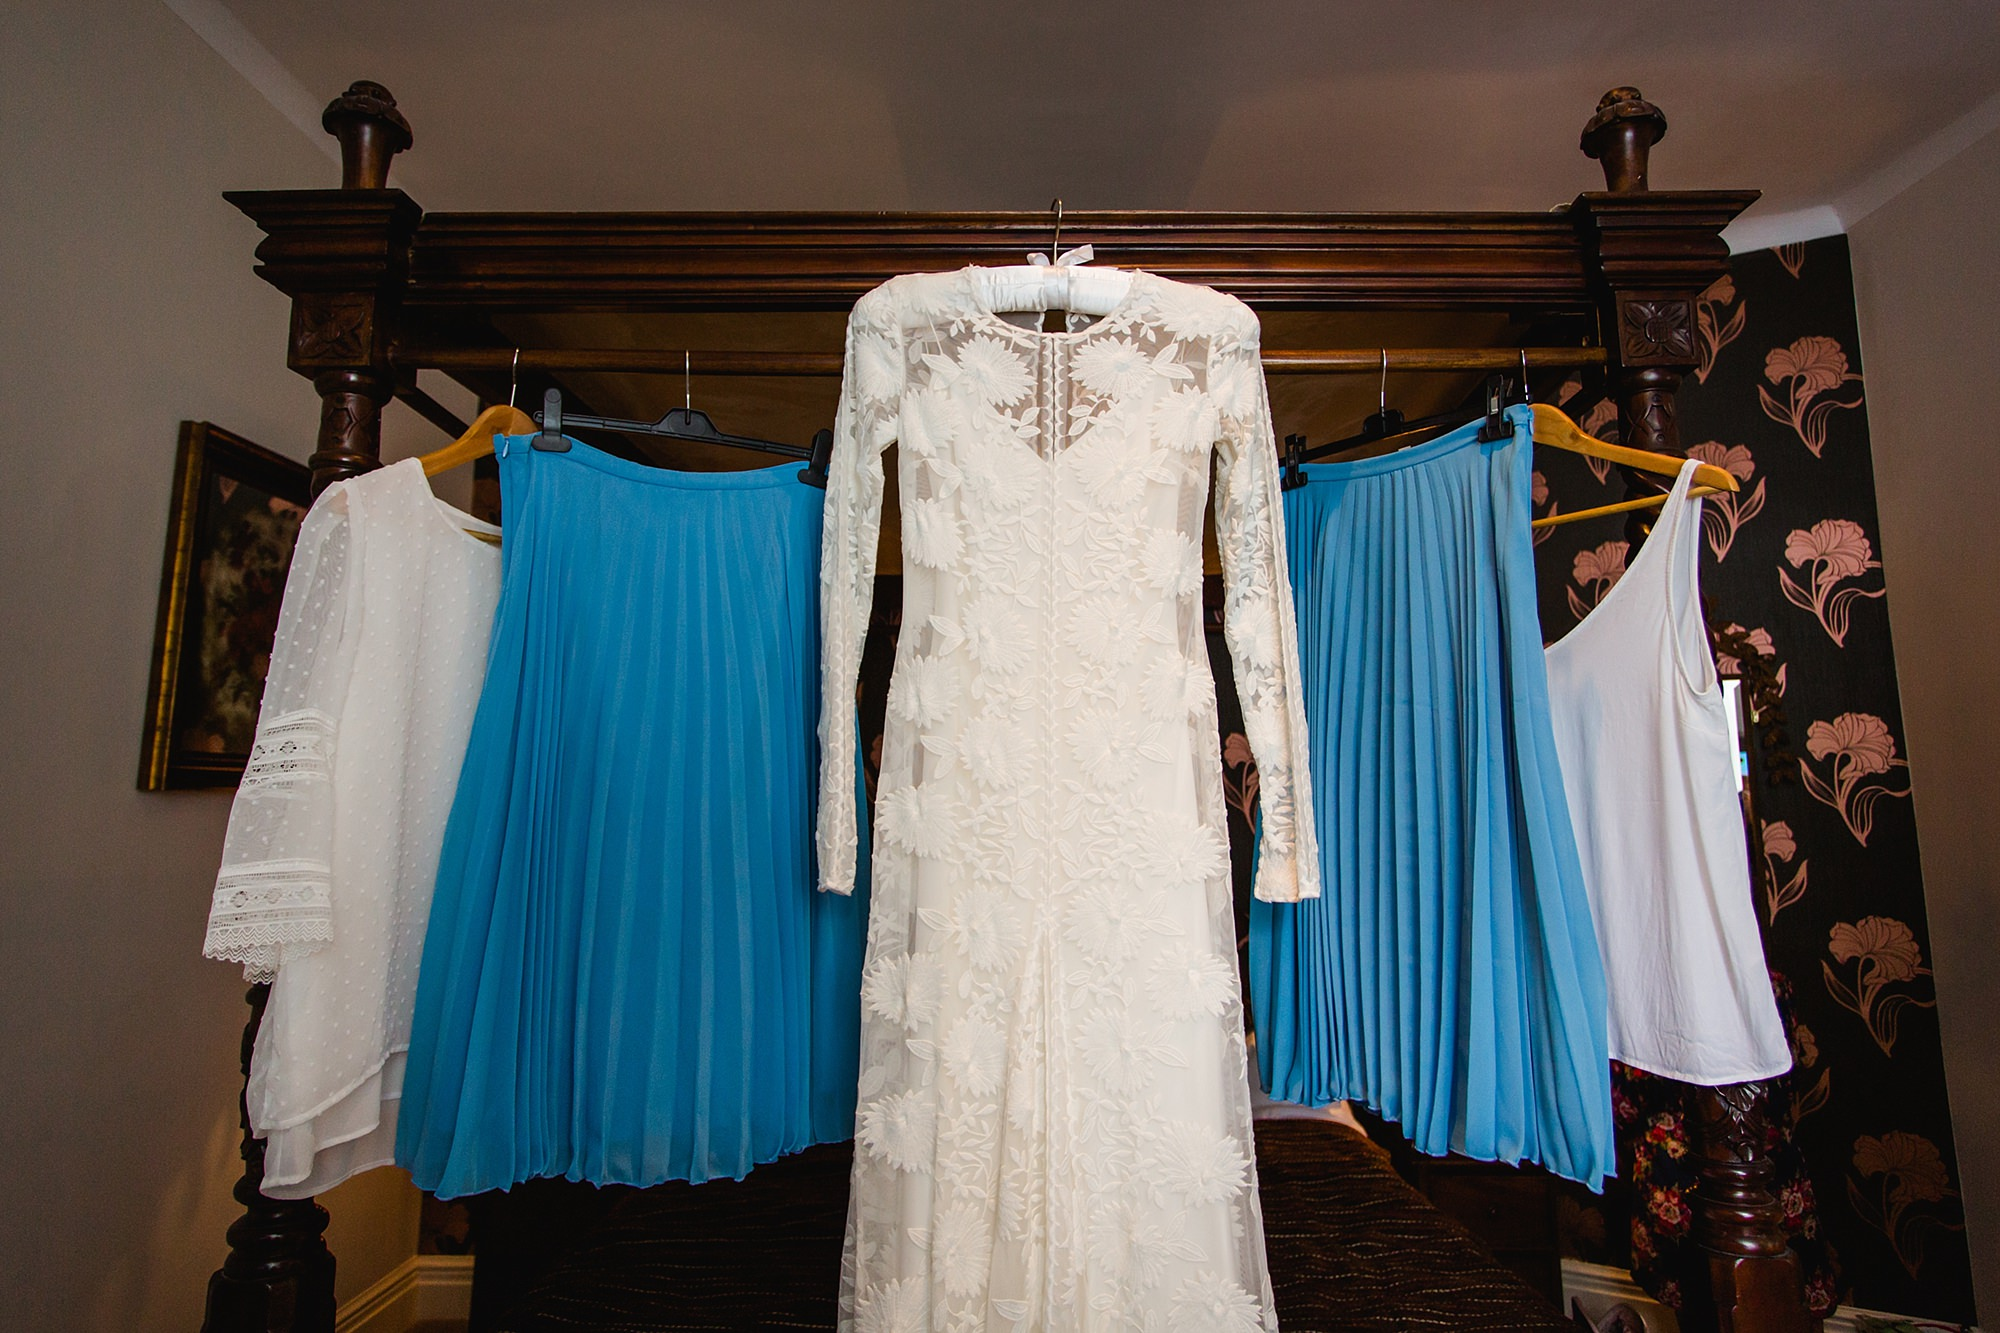 Isis Farmhouse Oxford Wedding bride and bridesmaids dresses hung up